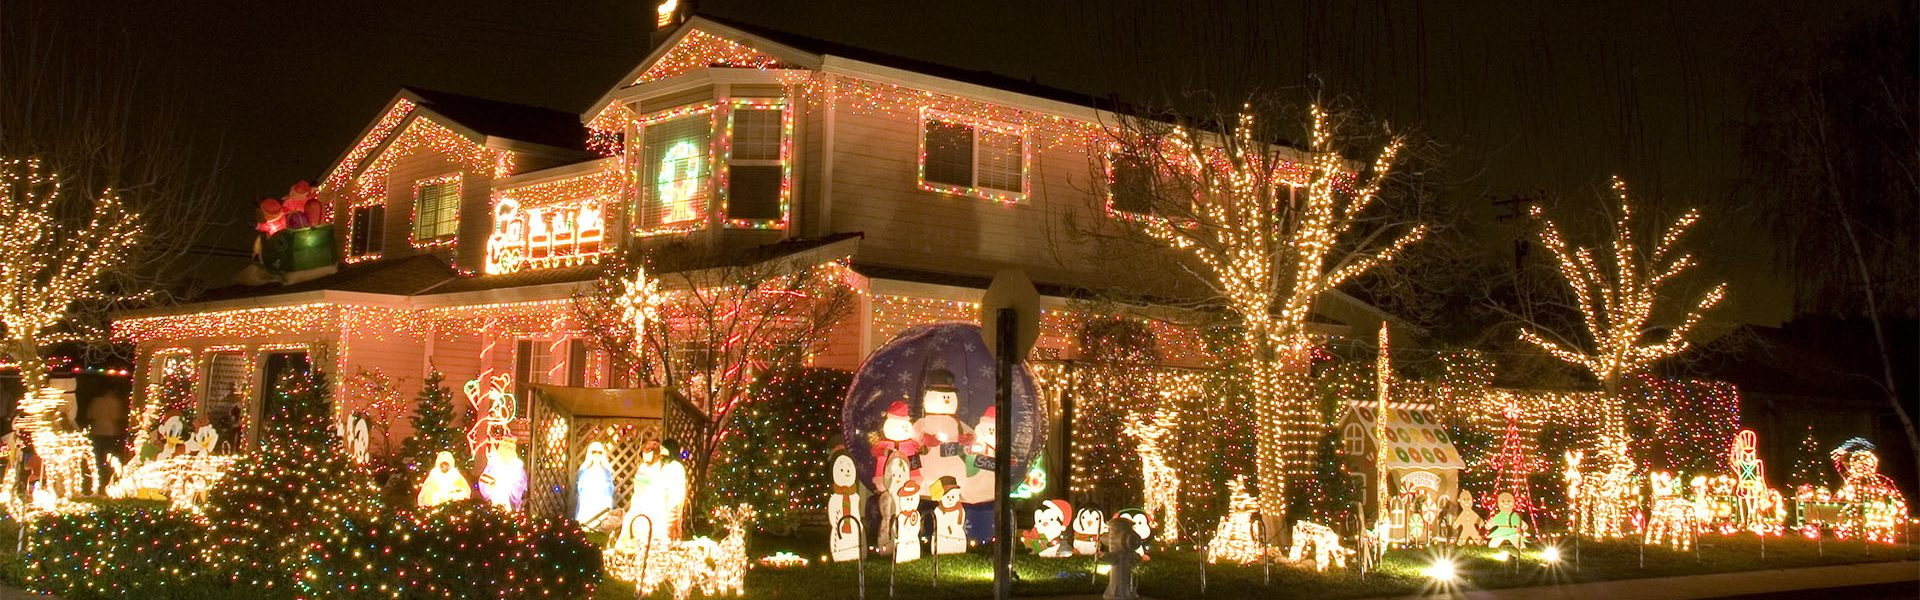 Commercial Christmas Lights.Christmas Lights Installers Fort Collins Lighting